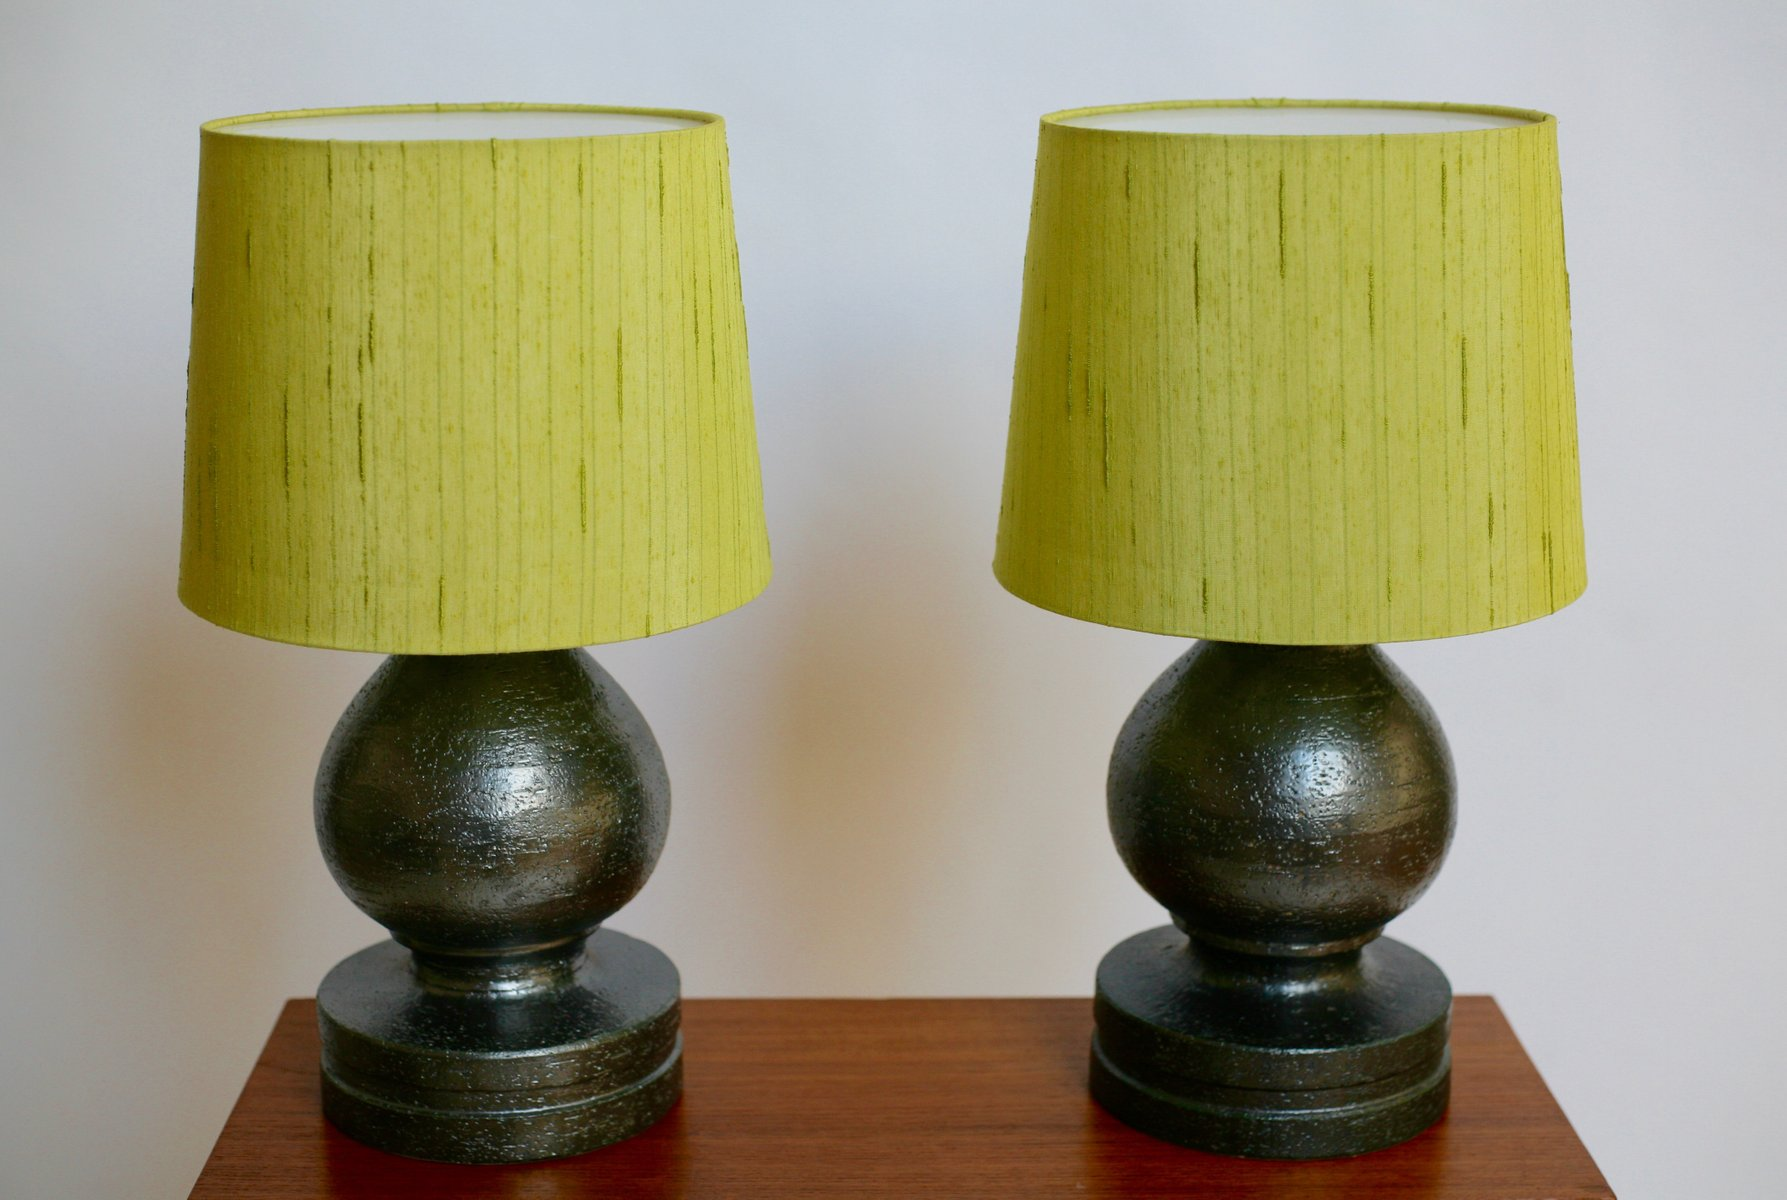 ceramic table lamps by bitossi for luxus set of 2